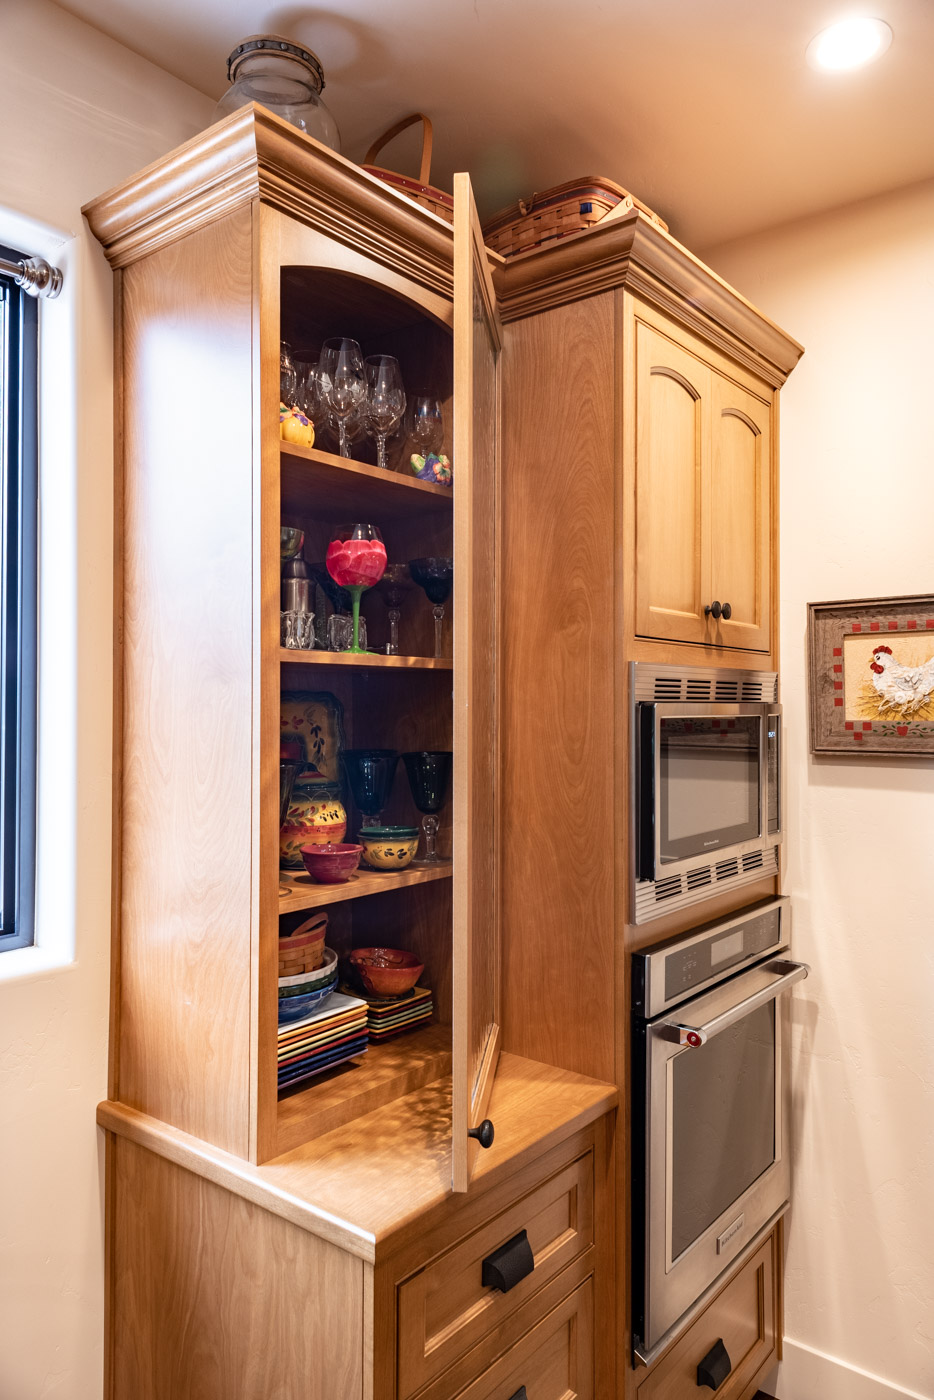 Tuscan Artisan custom stained Alder wood kitchen cabinet display